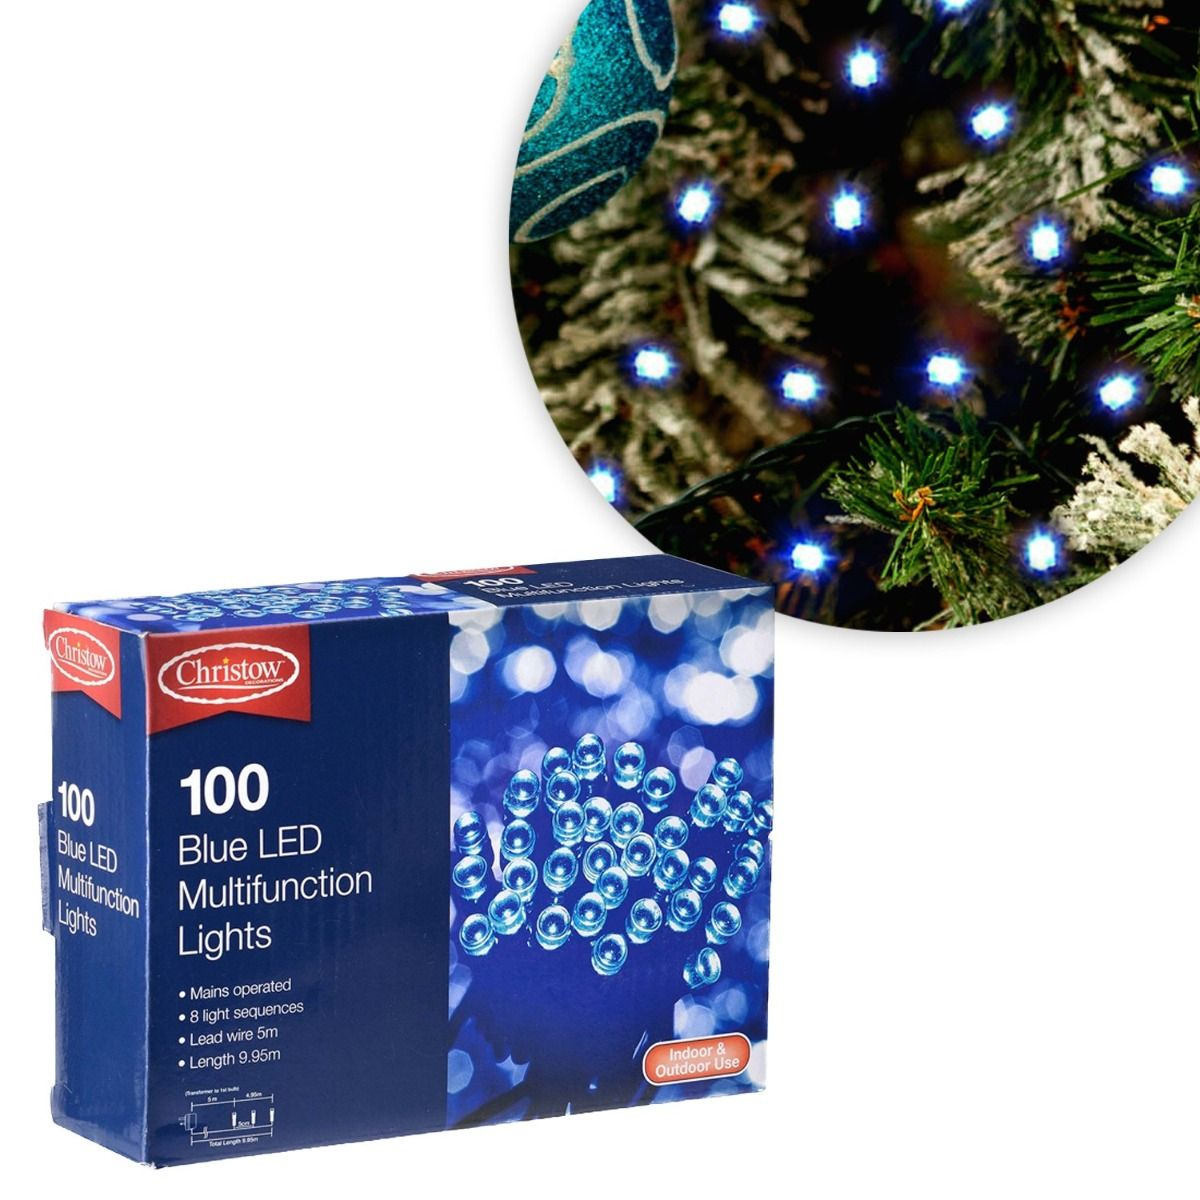 Christow Blue Led Multi Function Christmas Lights